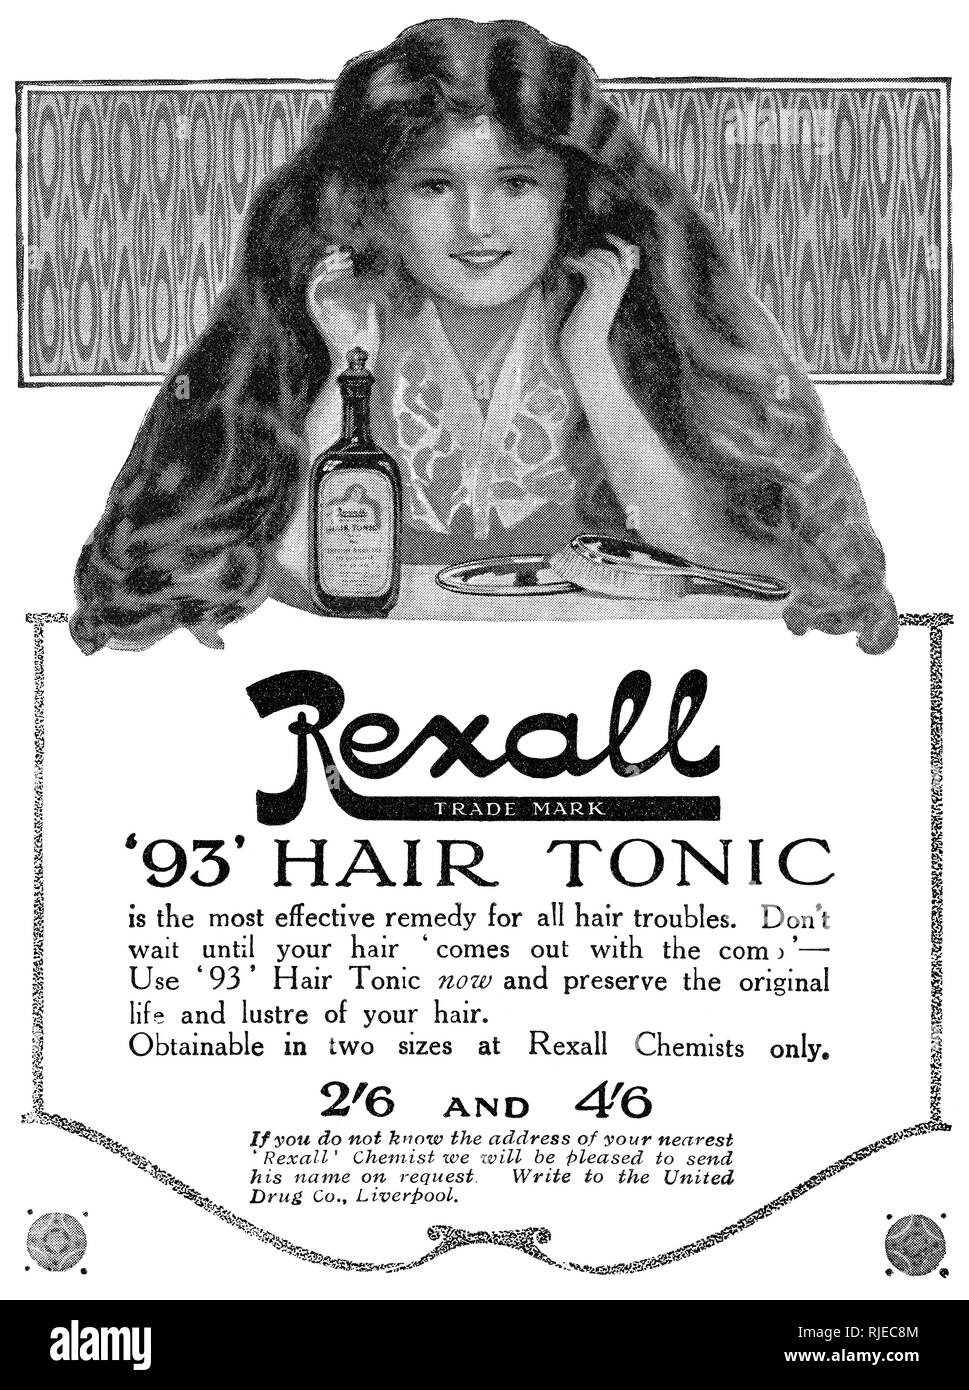 1920s Advertising Archive Stock Photos & 1920s Advertising